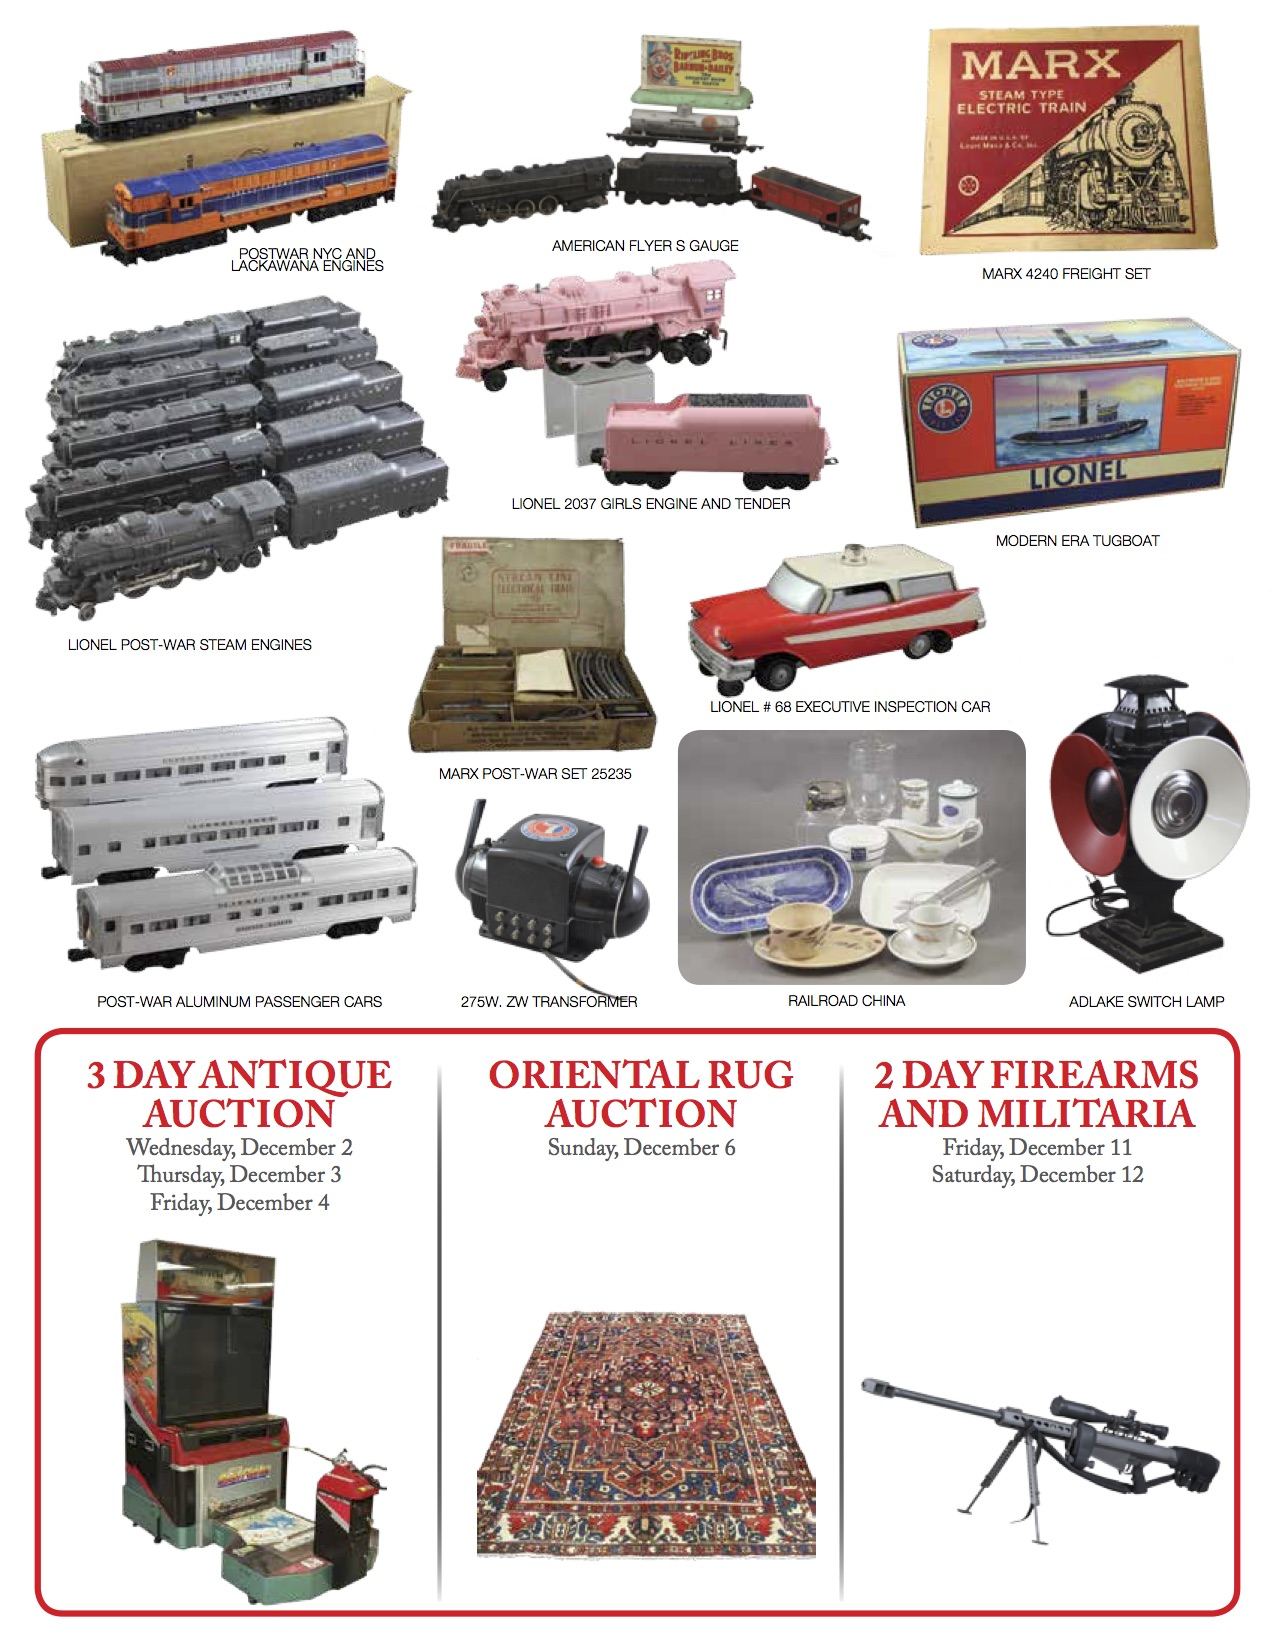 Toy Train Dec Flyer 15 low res pg 3.jpg